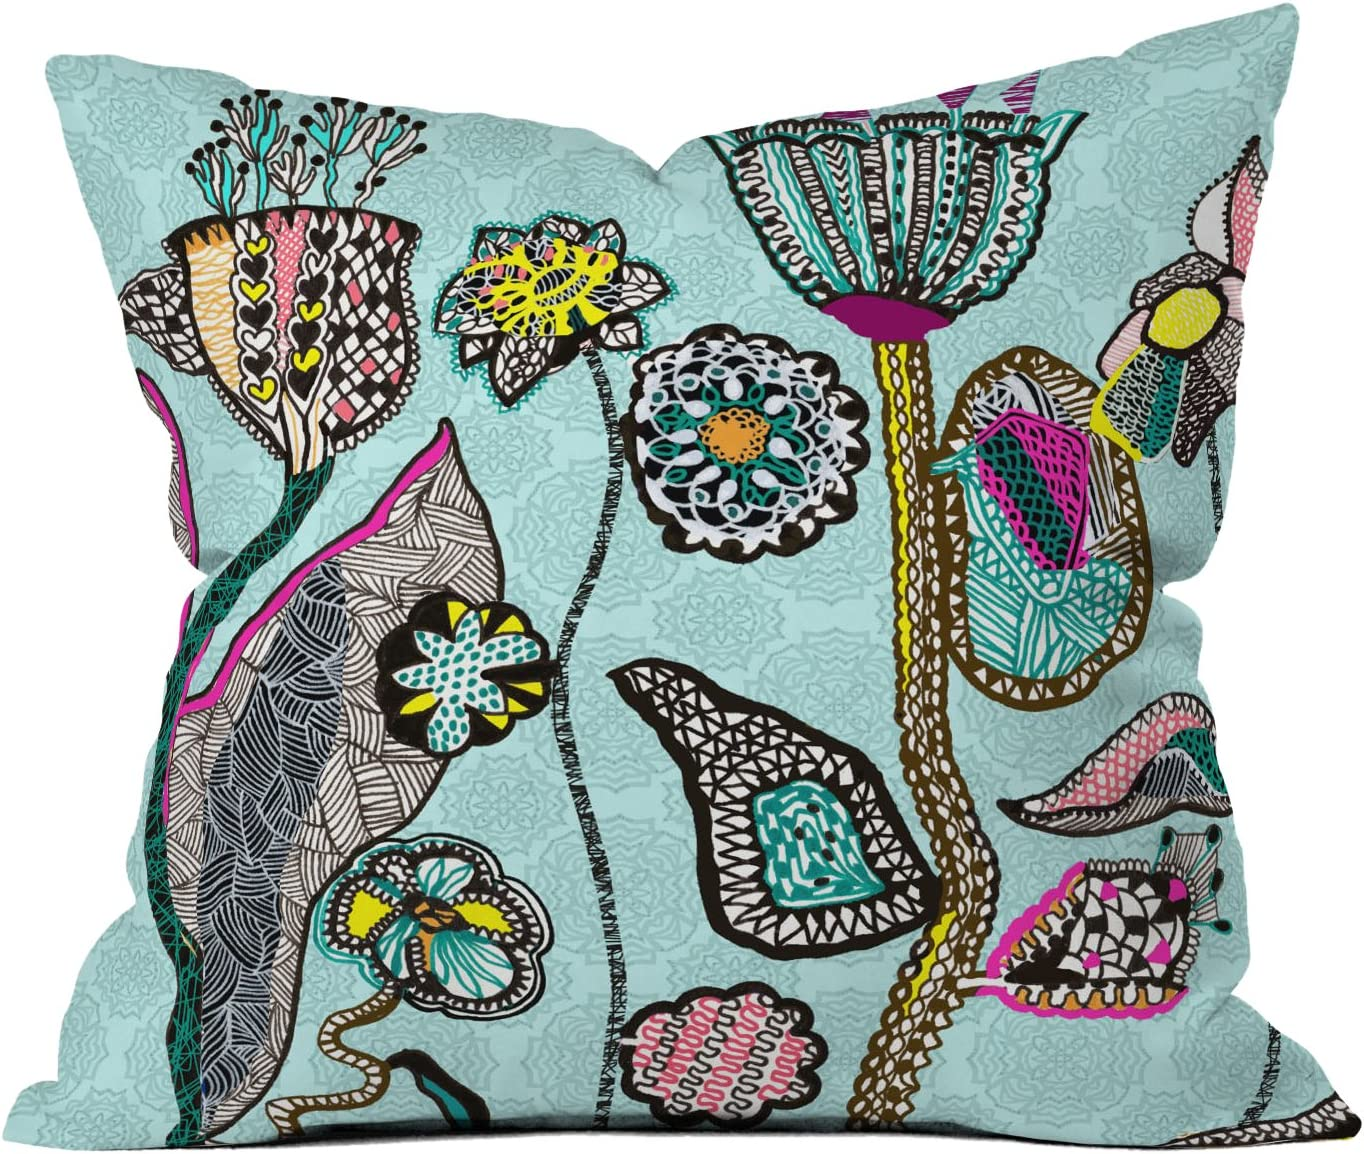 Deny Designs Mikaela Rydin The Garden within Throw Pillow, 26 by 26-Inch